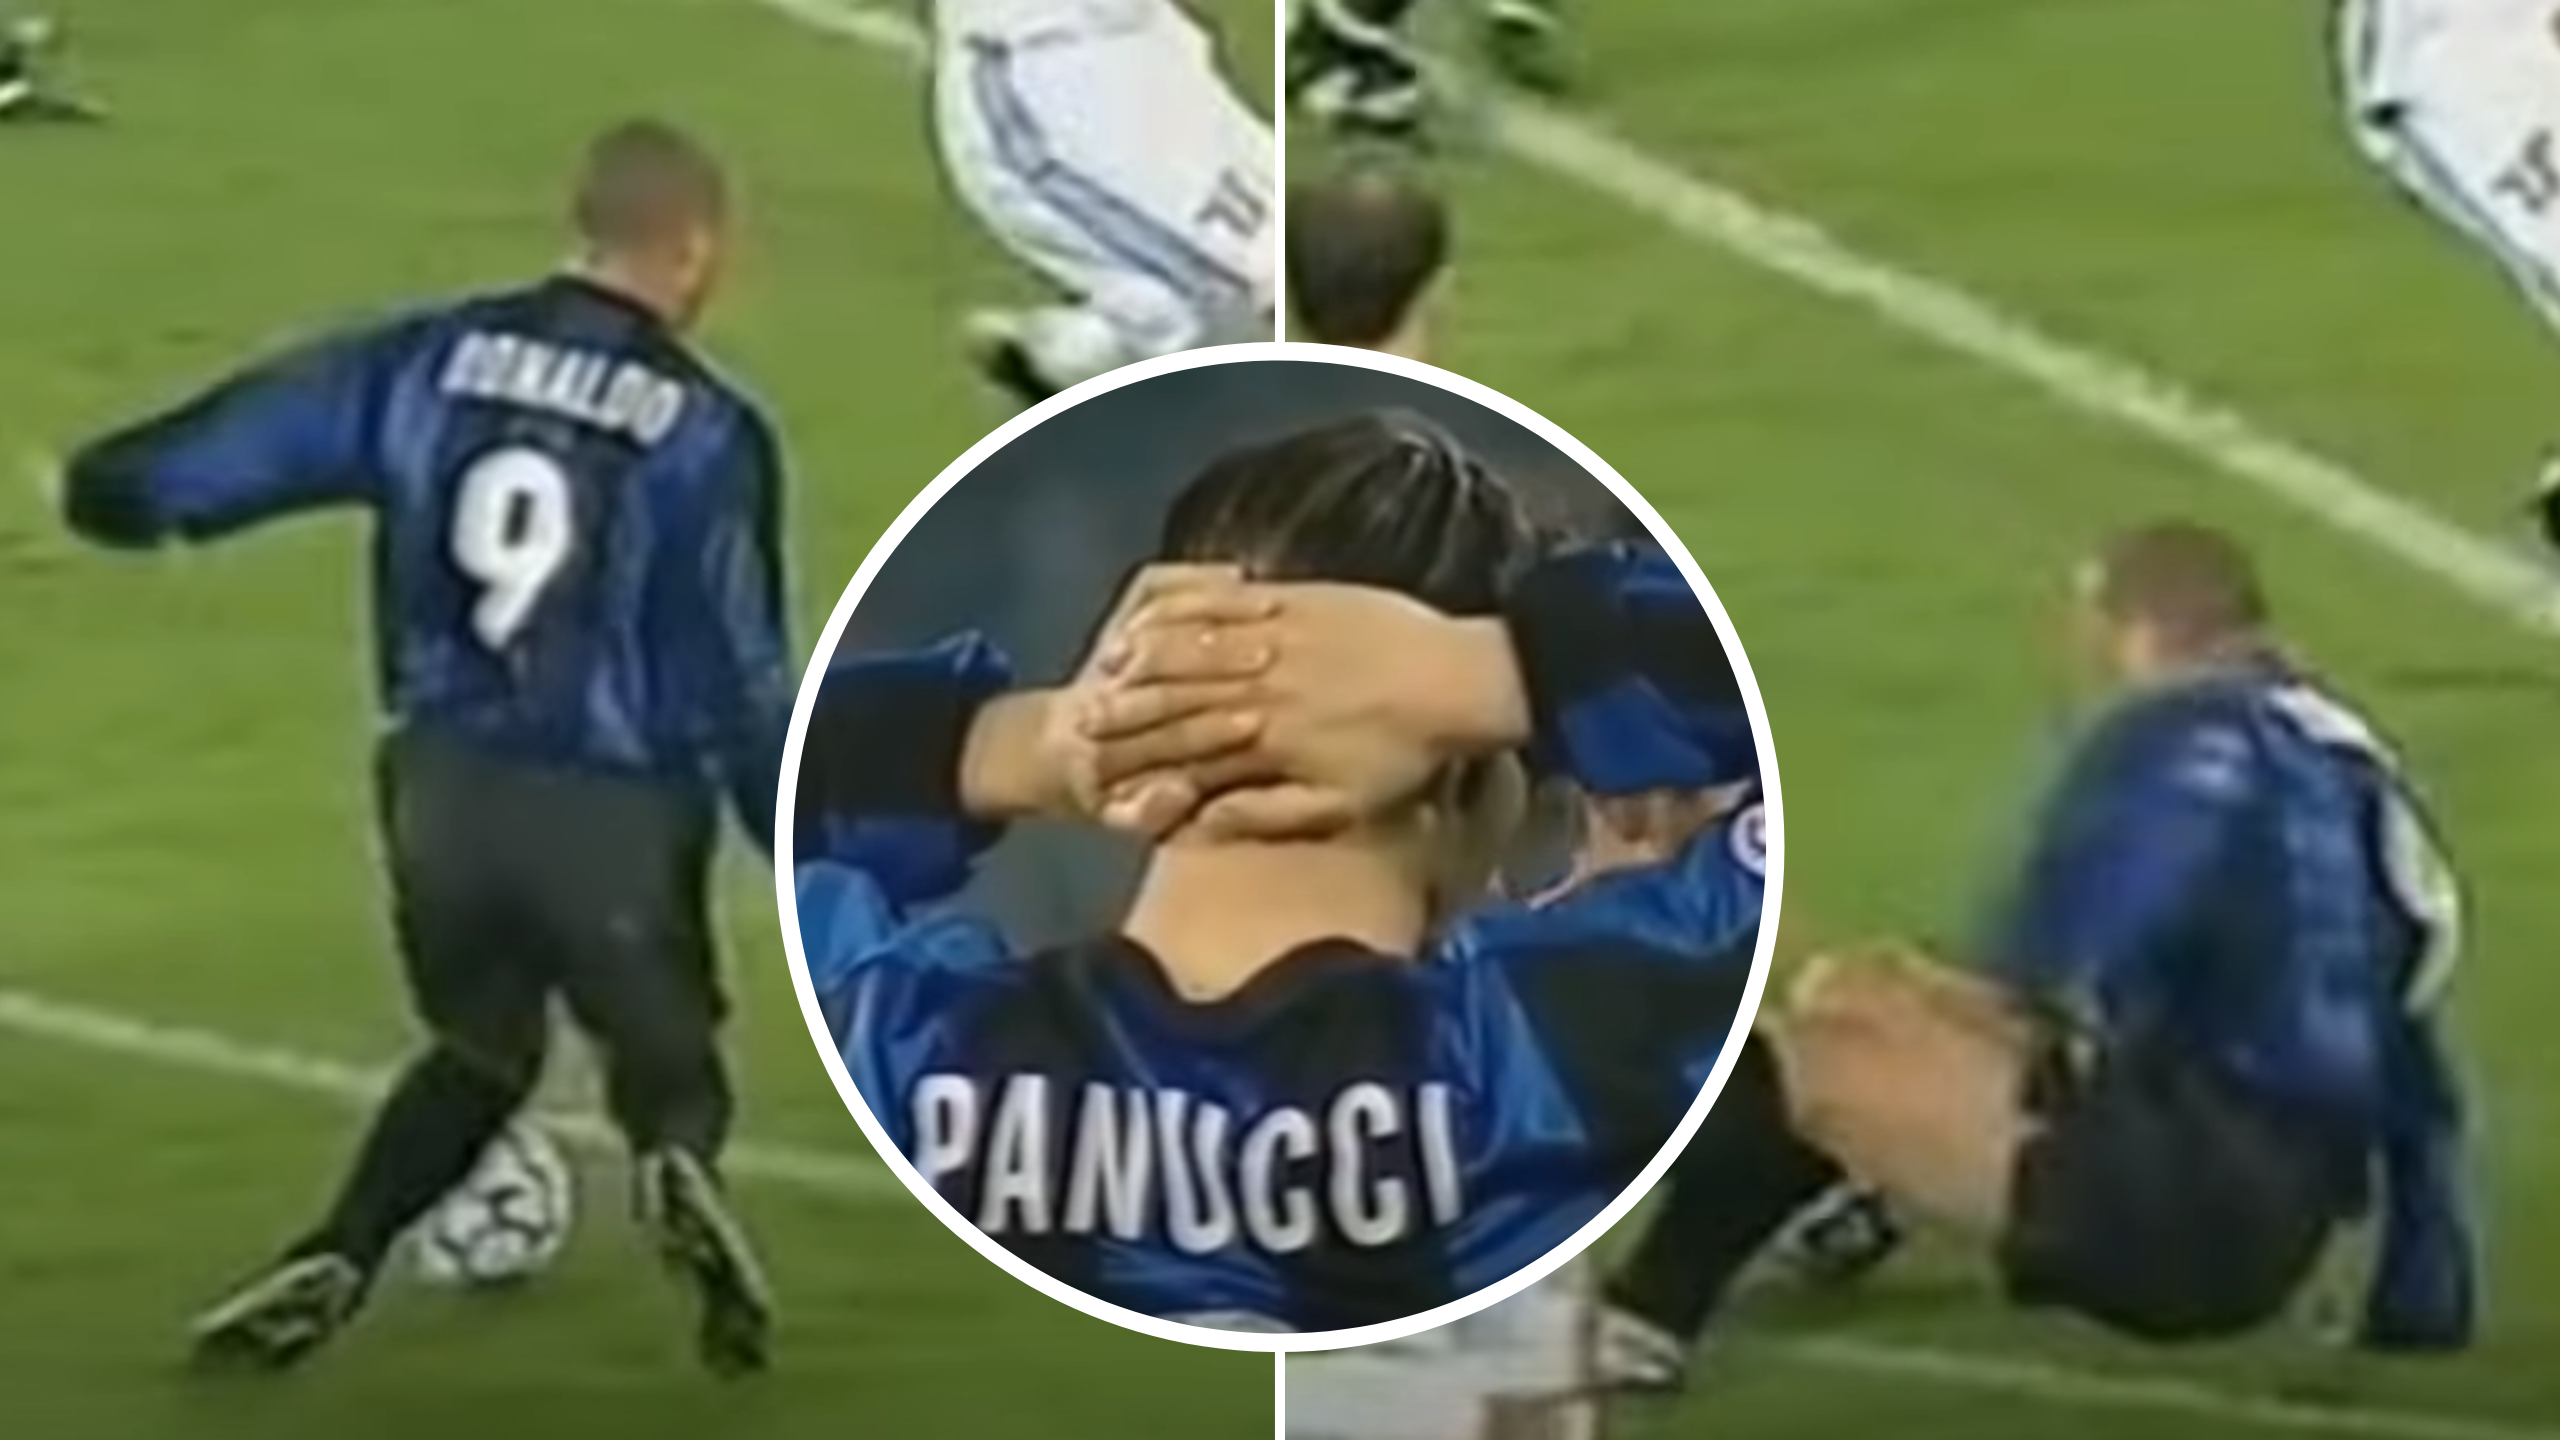 Ronaldo Nazario Suffered One Of Football S Most Horrific Injuries 20 Years Ago Today Sportbible